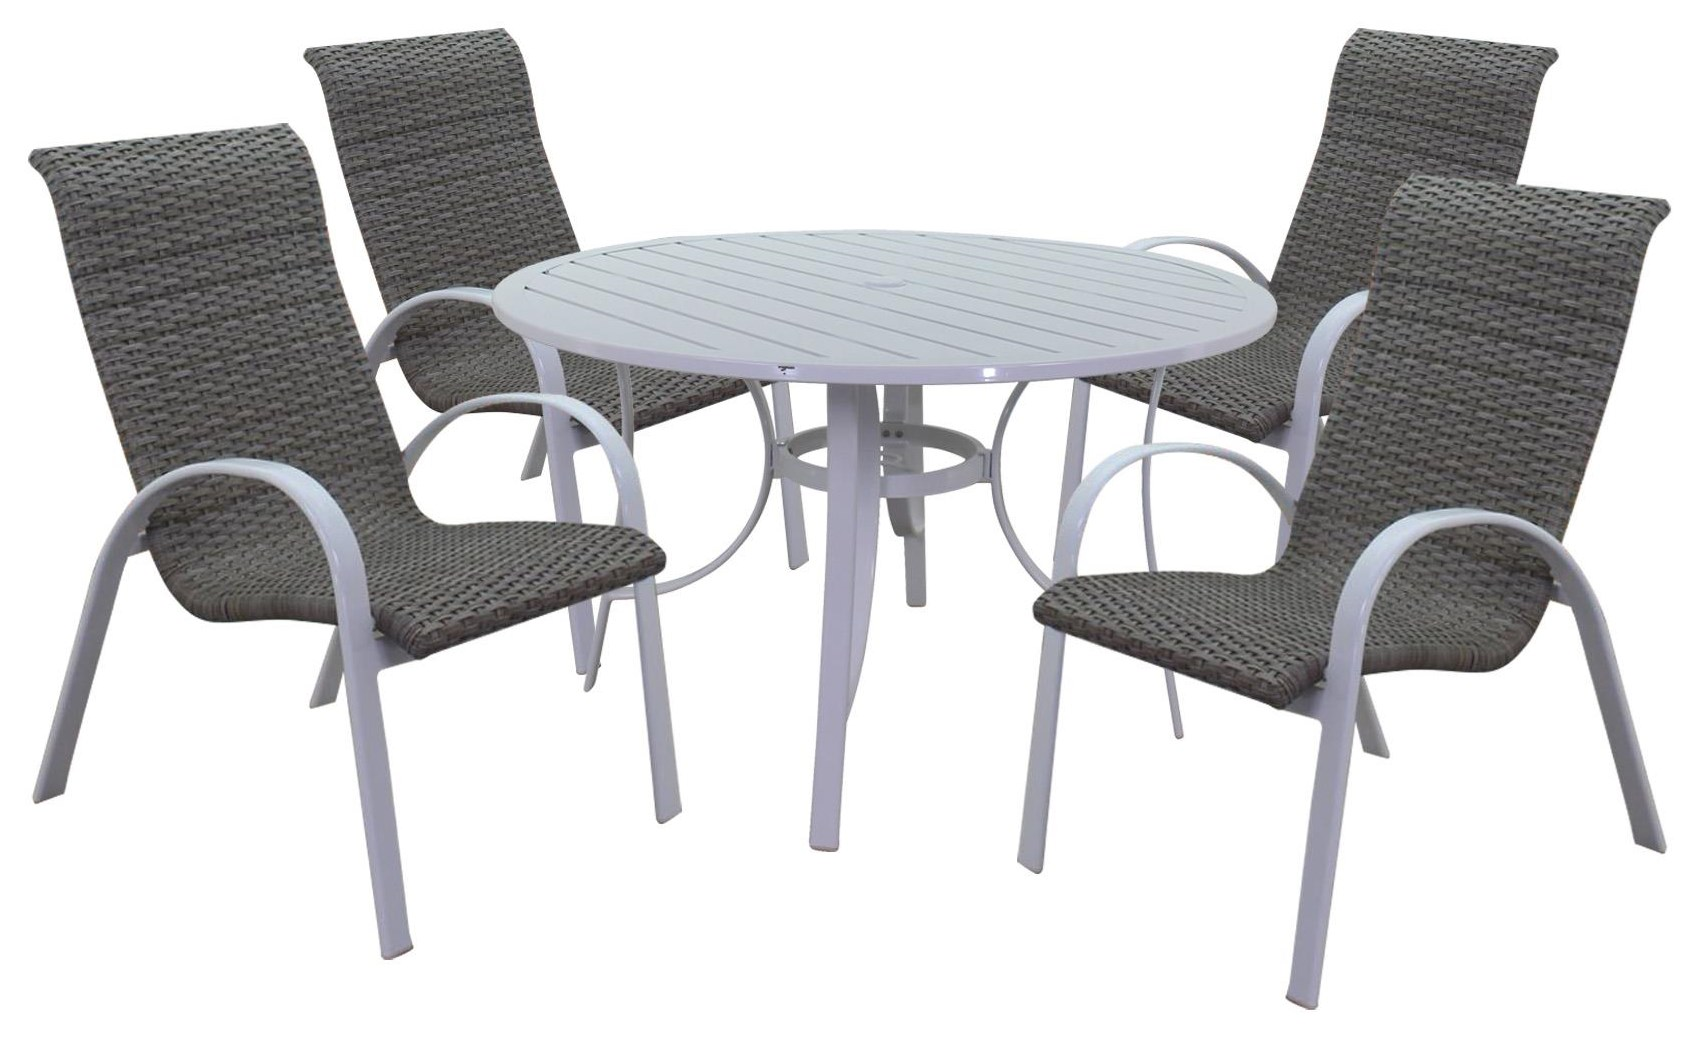 Portside Woven Table and Chair by Kingston Casual at Johnny Janosik